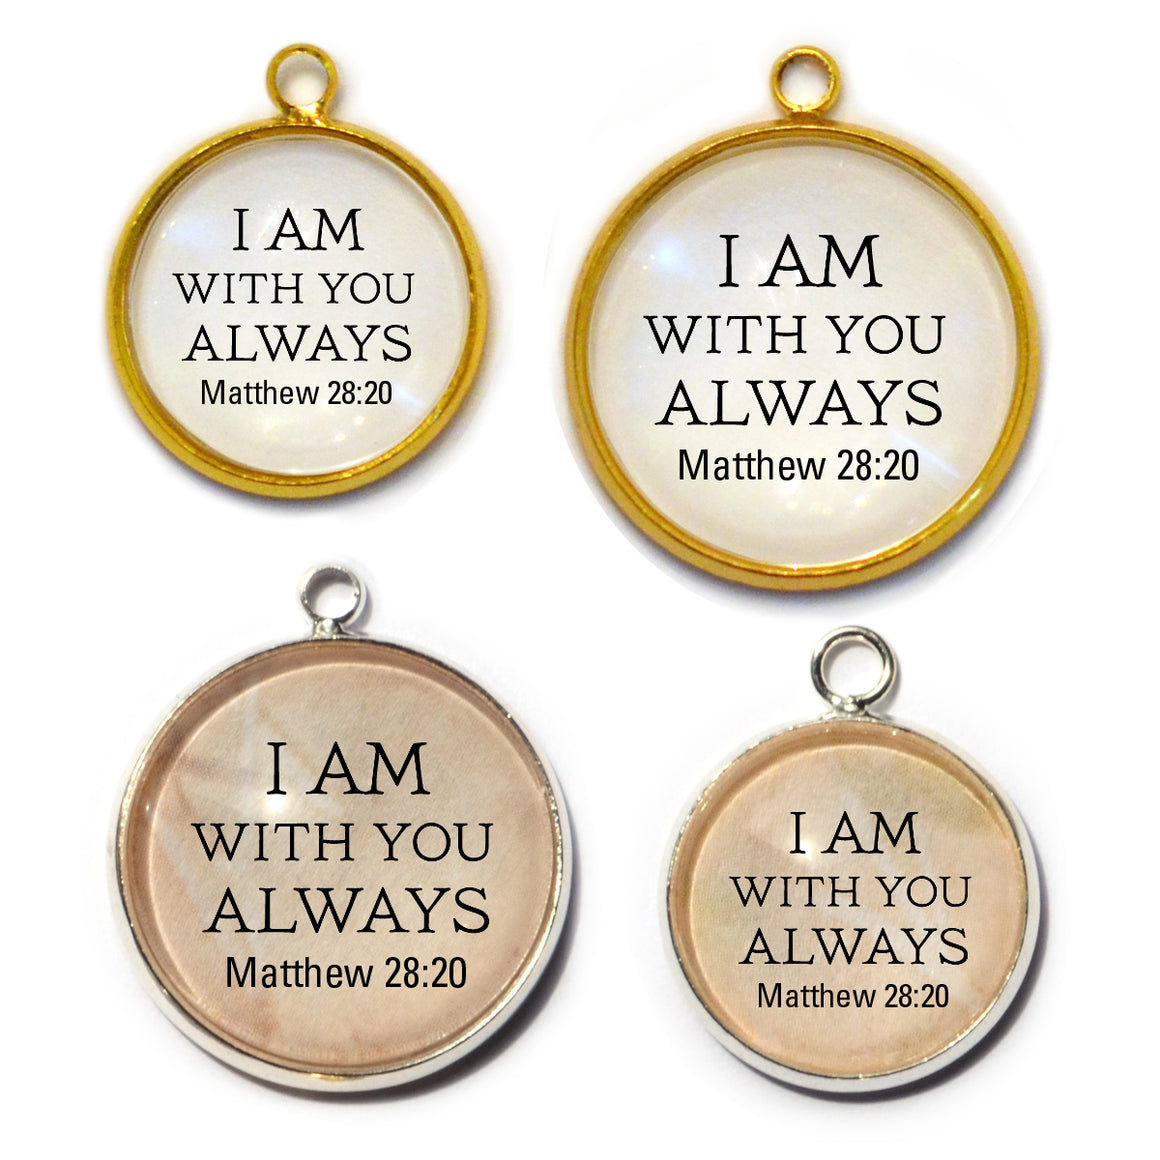 """I Am With You Always"" Matthew 28:20 Scripture Charms for Jewelry Making"